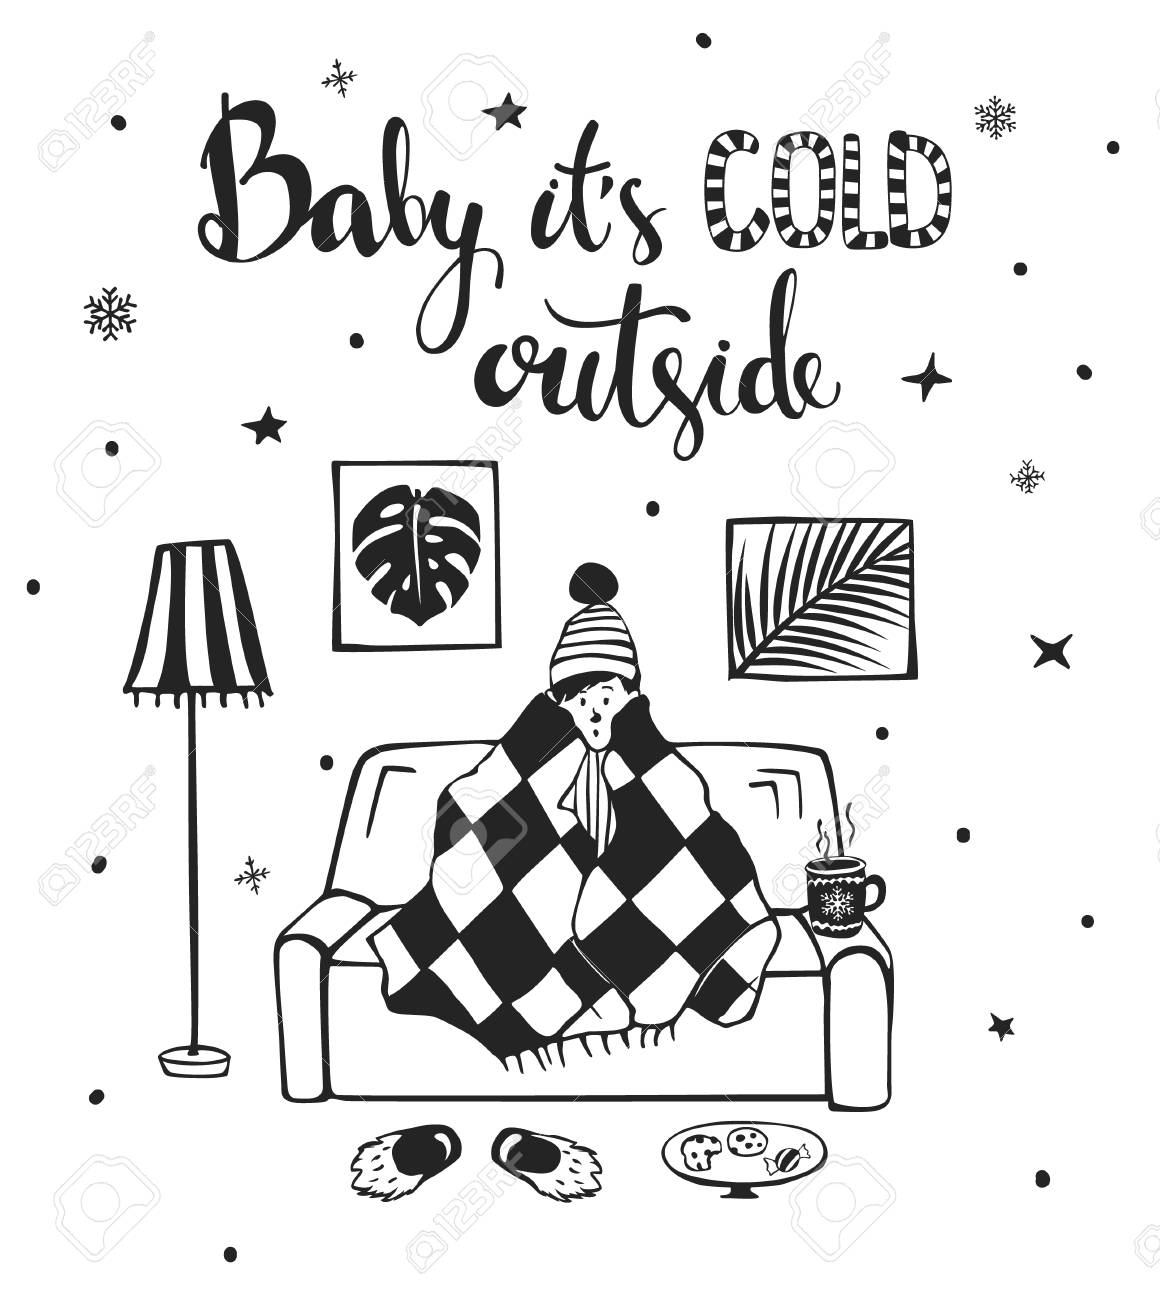 Baby its cold outside handwritten quote design.